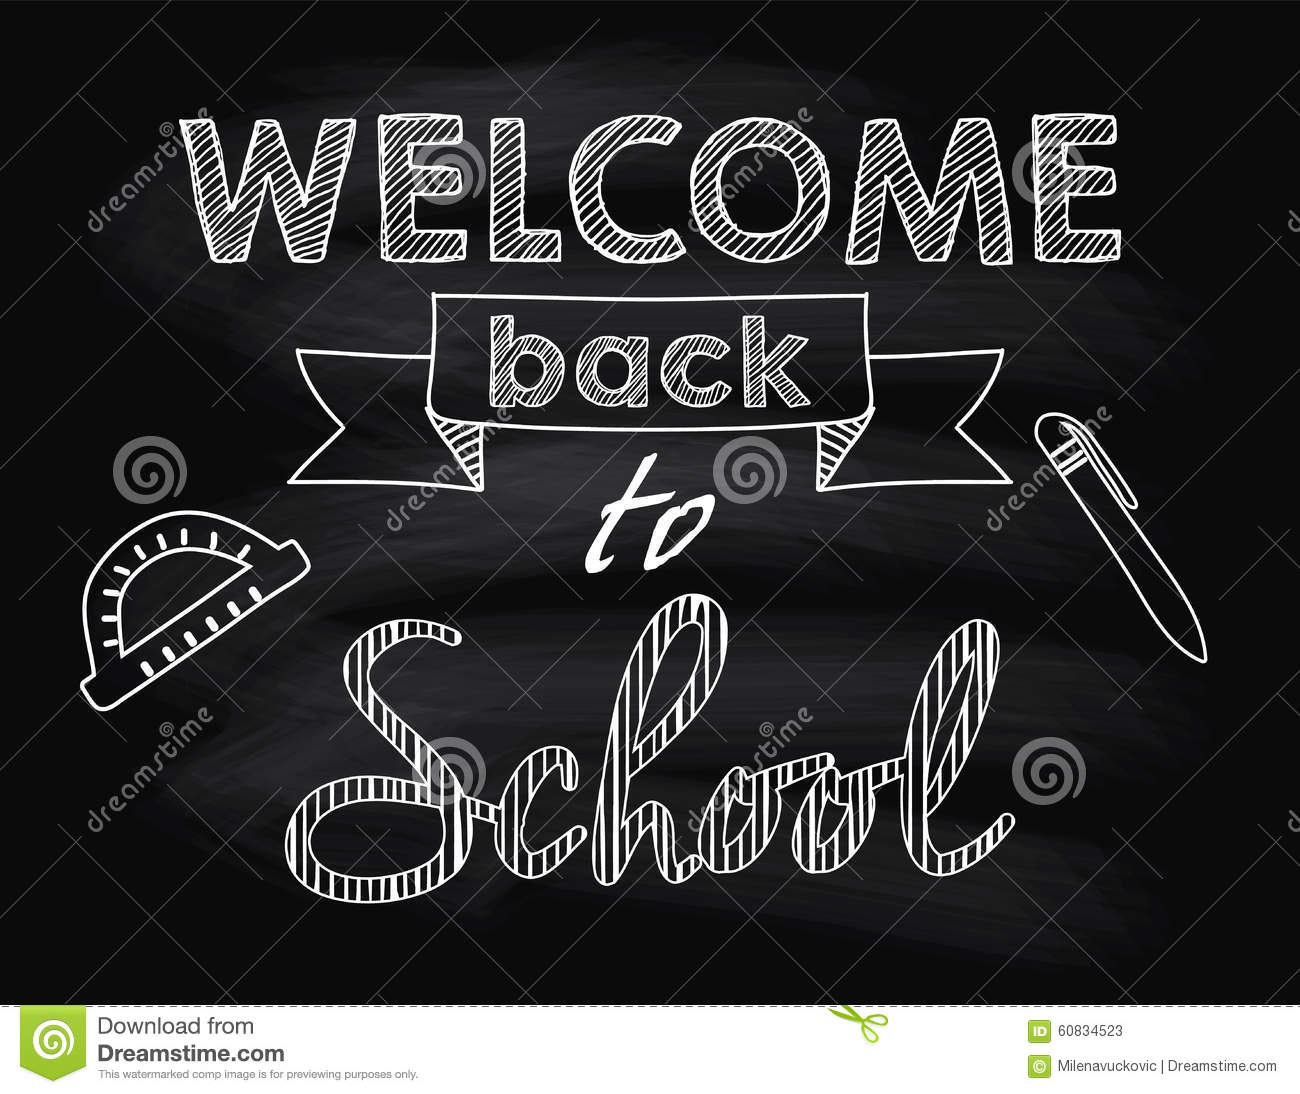 welcome-back-to-school-poster-education-schooling-concept-concept-60834523.jpg